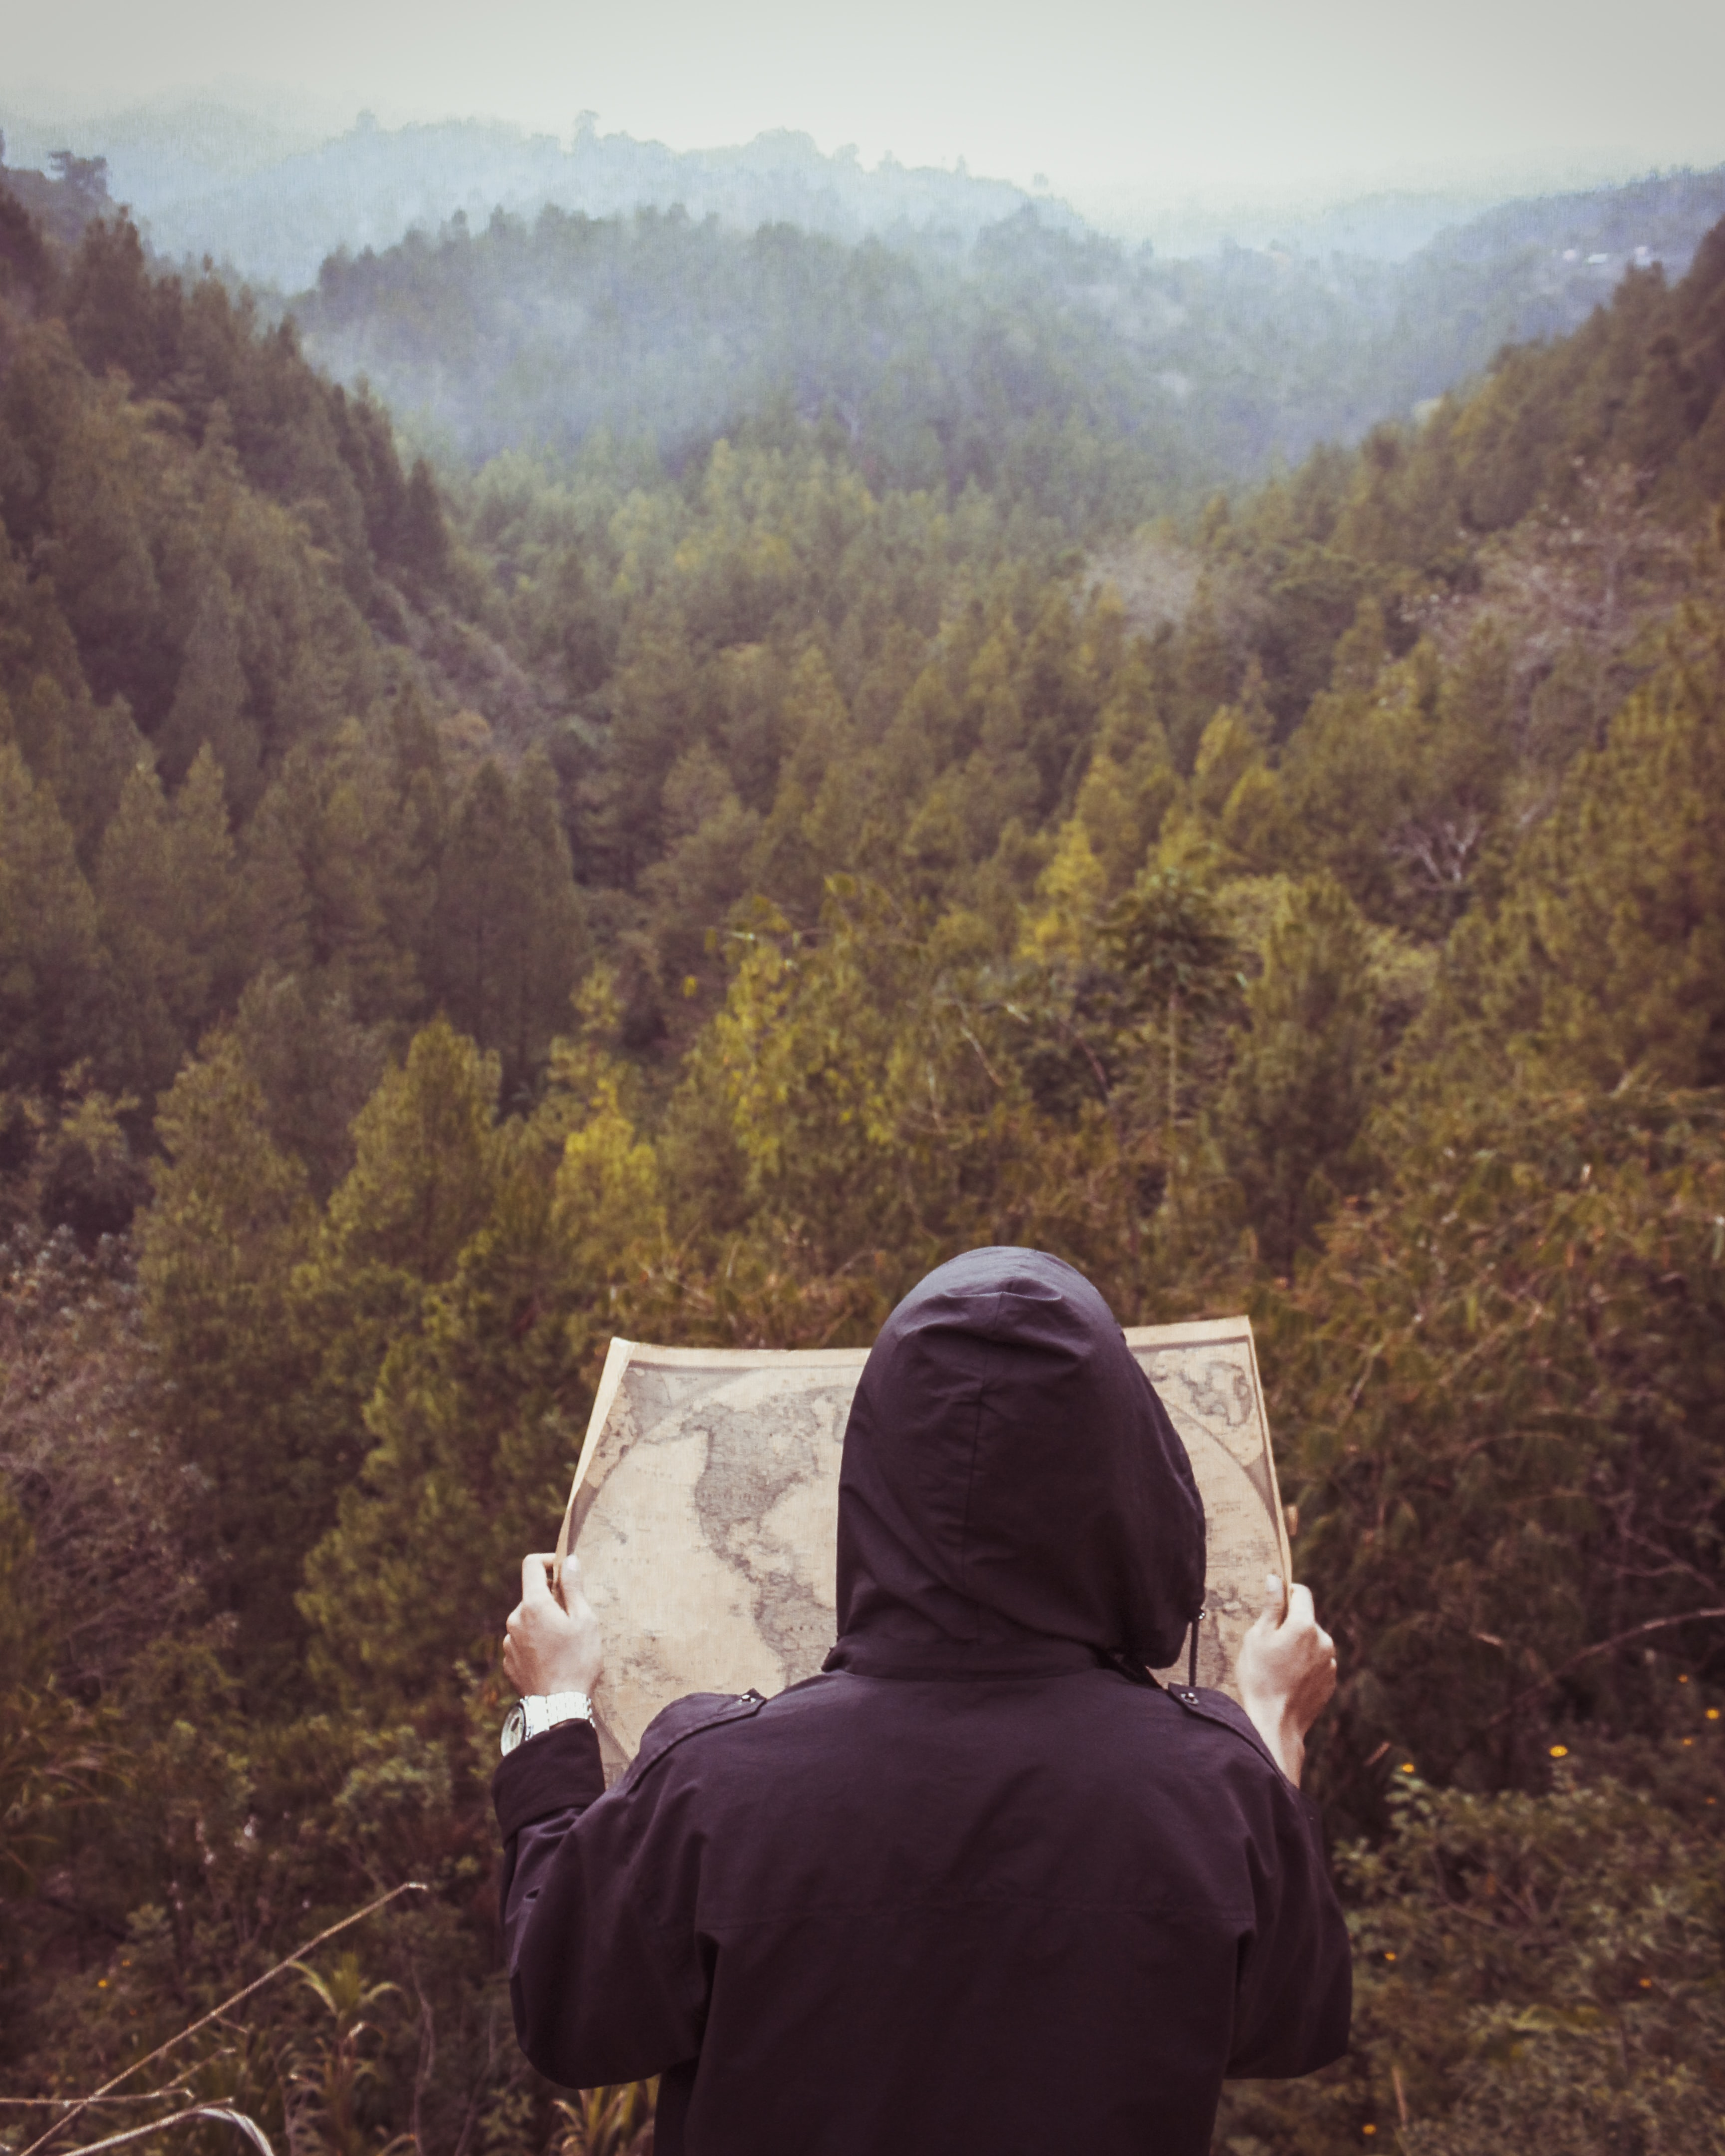 person facing forest reading map during daytime